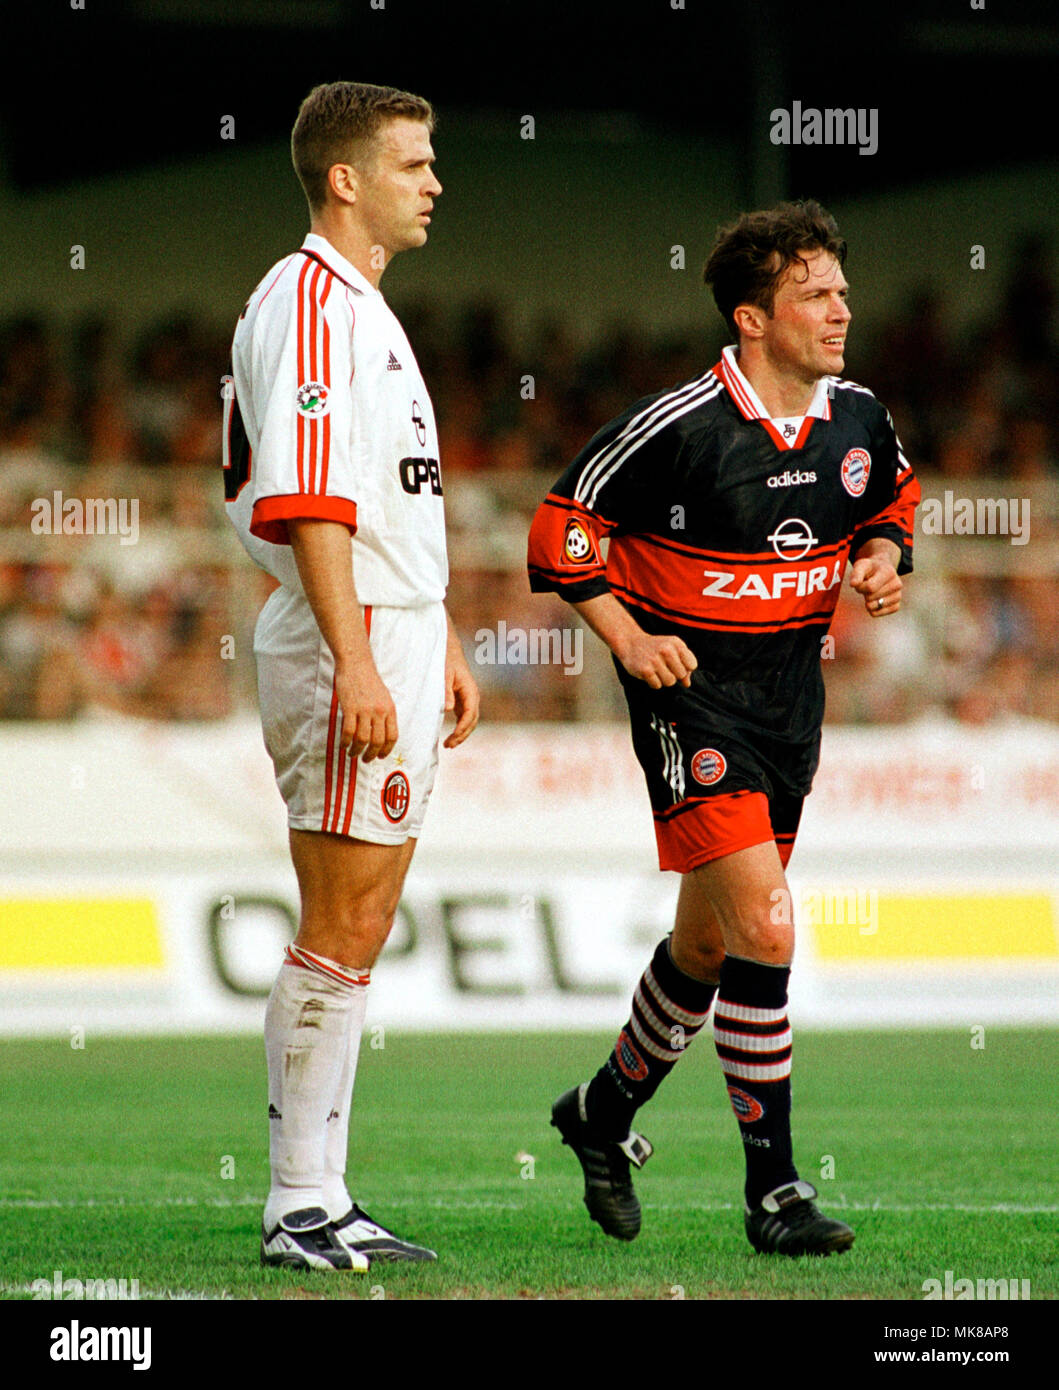 Football: Stadion am Bruchweg Mainz Germany 31.5.1999, international friendly match FC Bayern München (Munchen, Muenchen) vs AC Milan (Milano) --- Oliver BIERHOFF (Milan, left), Lothar Matthäus (Matthaus, Matthaeus) Stock Photo